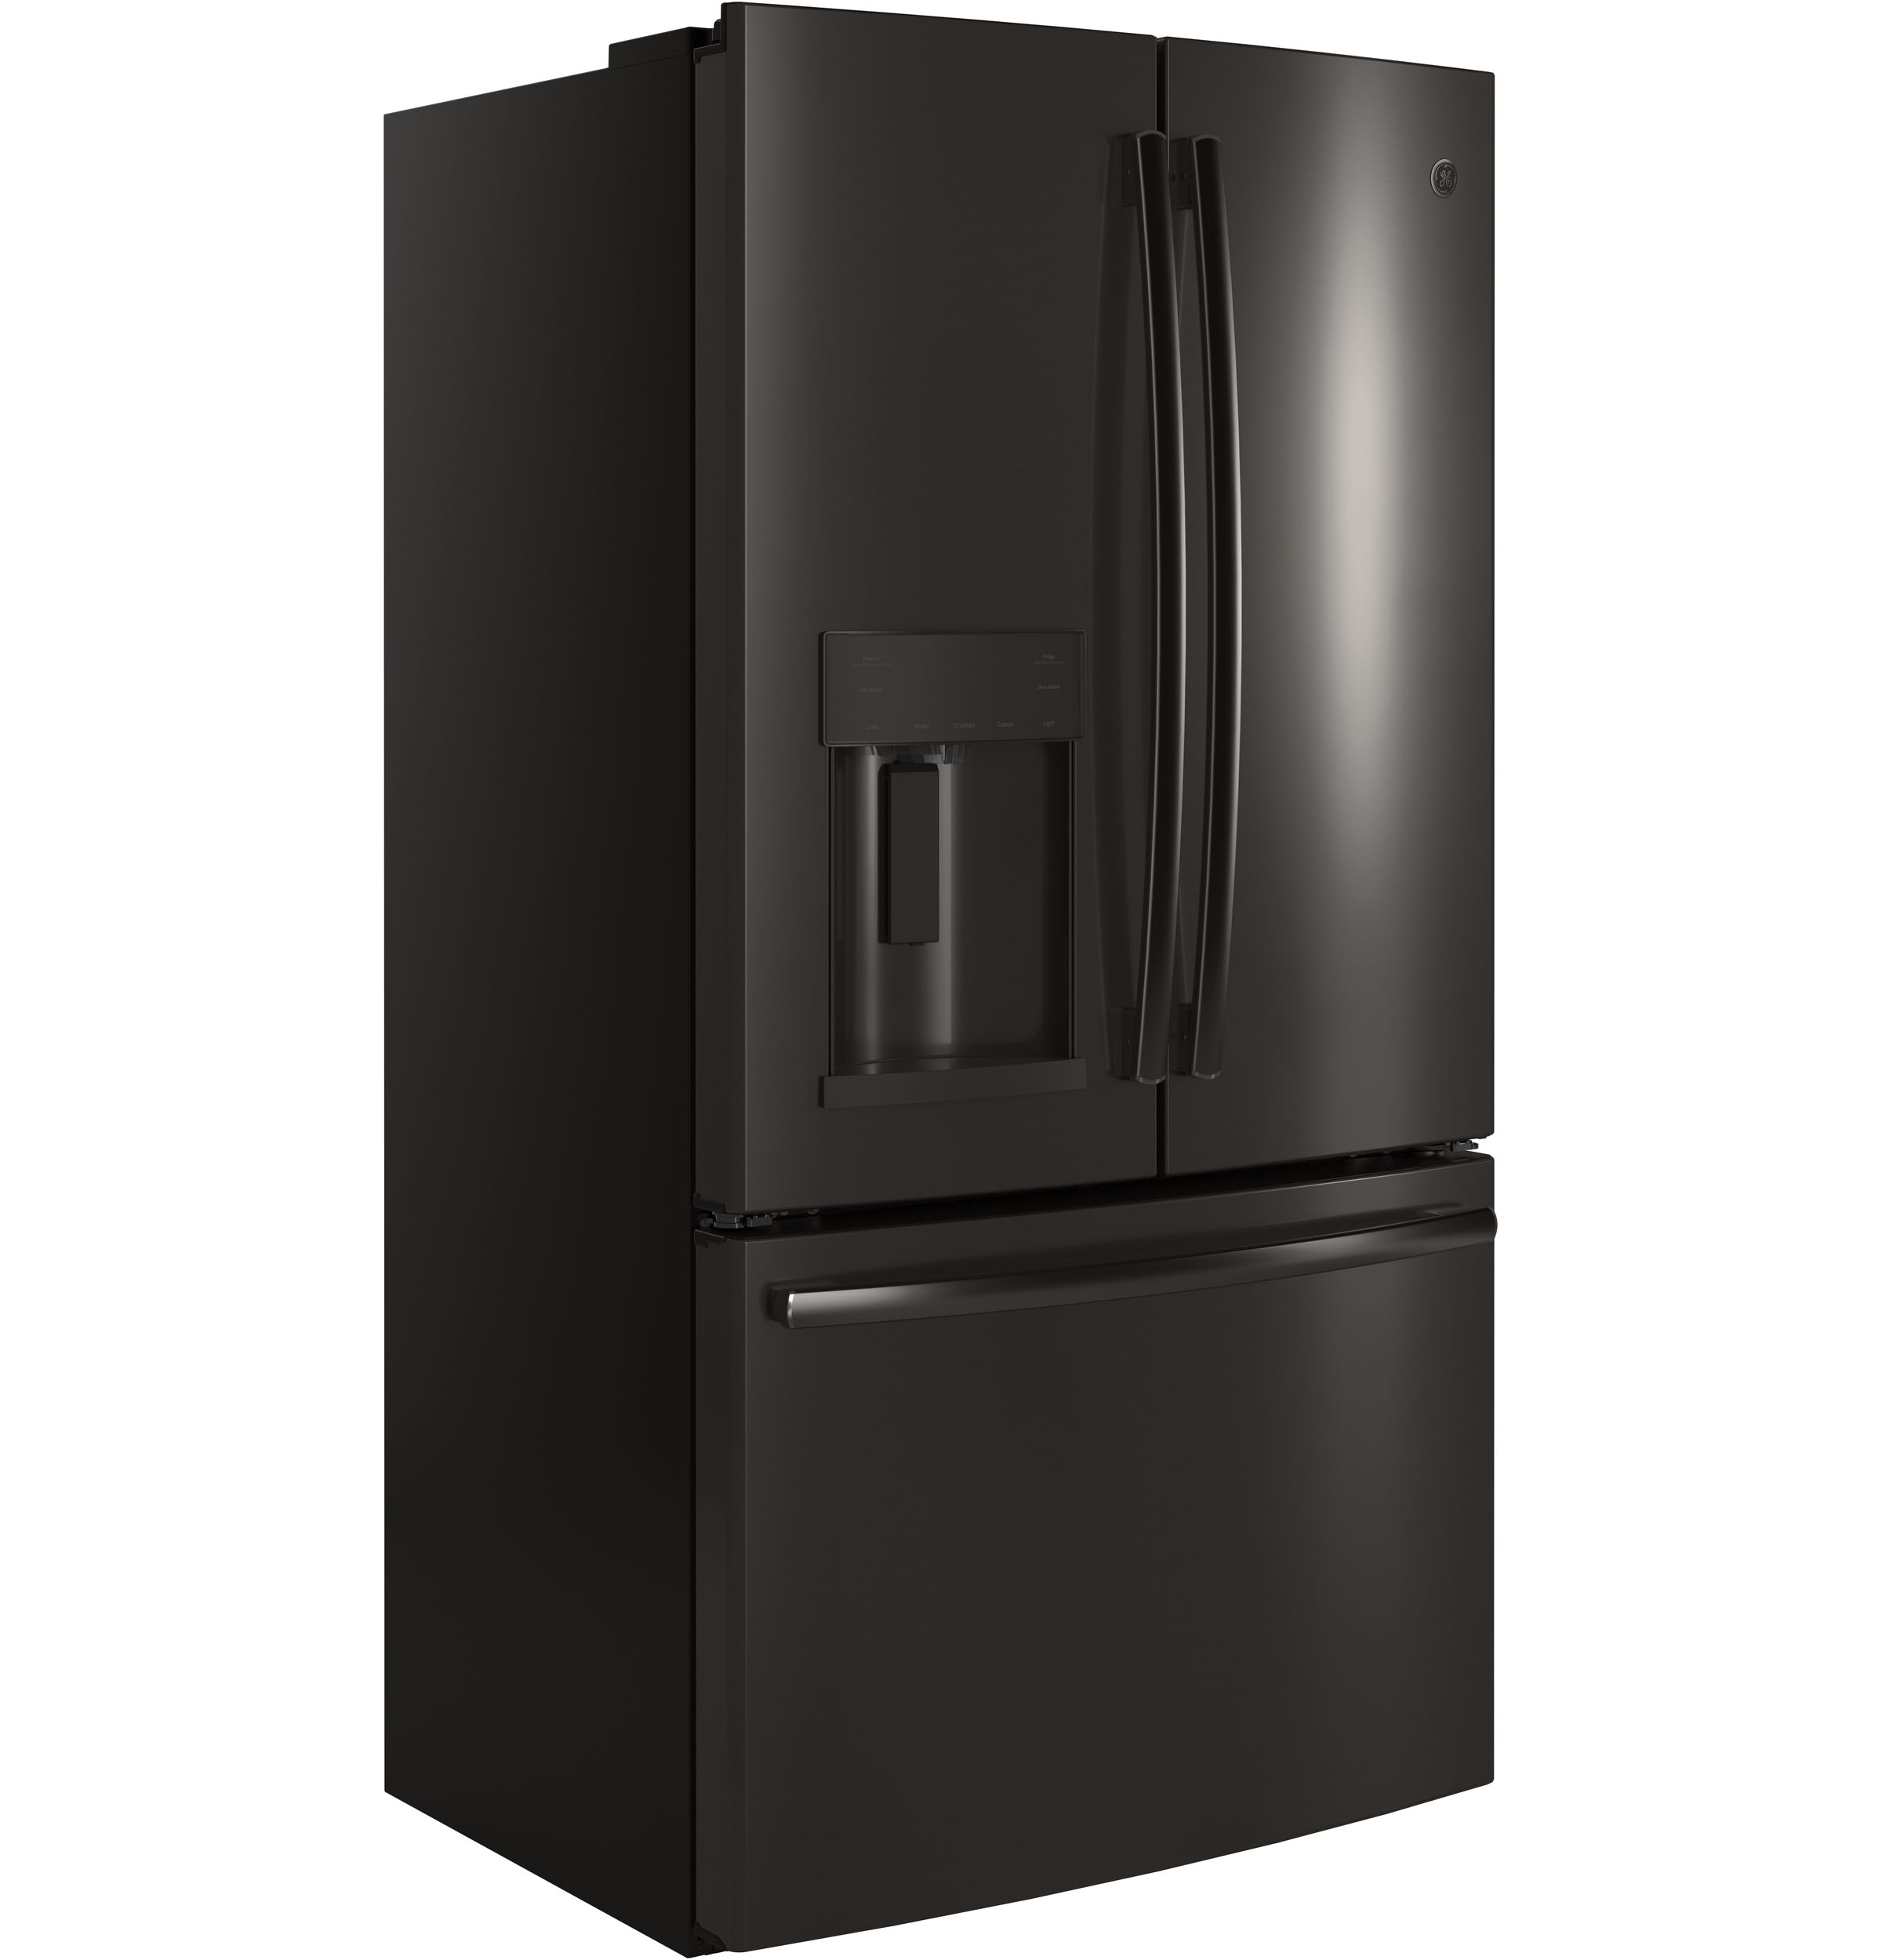 Model: GYE22HBLTS | GE® ENERGY STAR® 22.2 Cu. Ft. Counter-Depth French-Door Refrigerator